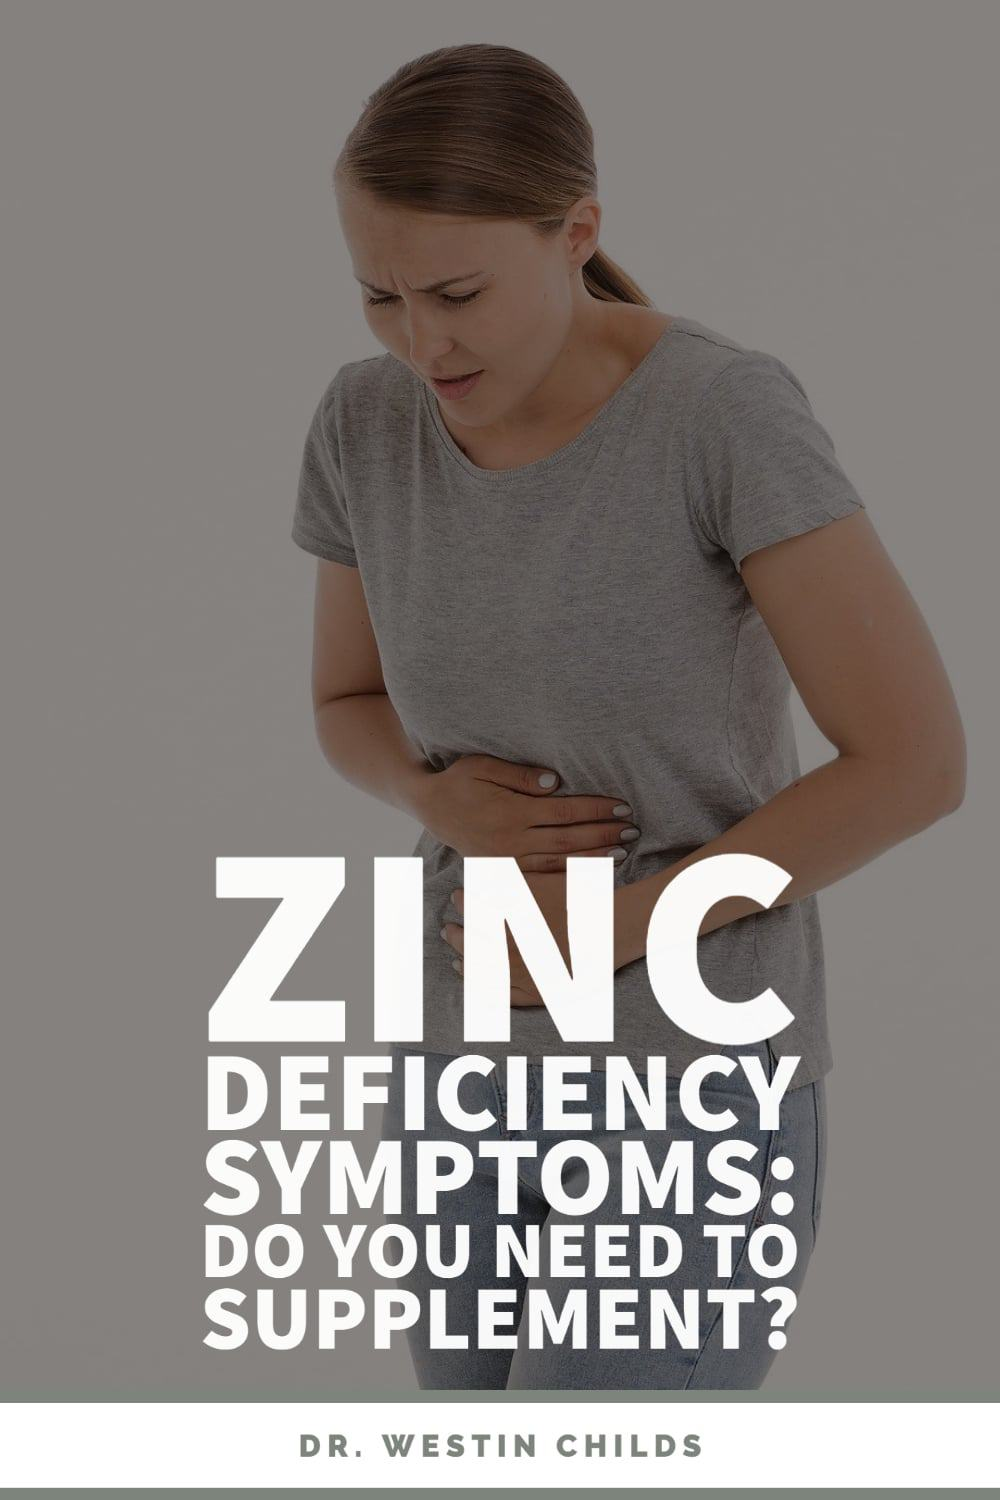 early warning signs of zinc deficiency that you should know